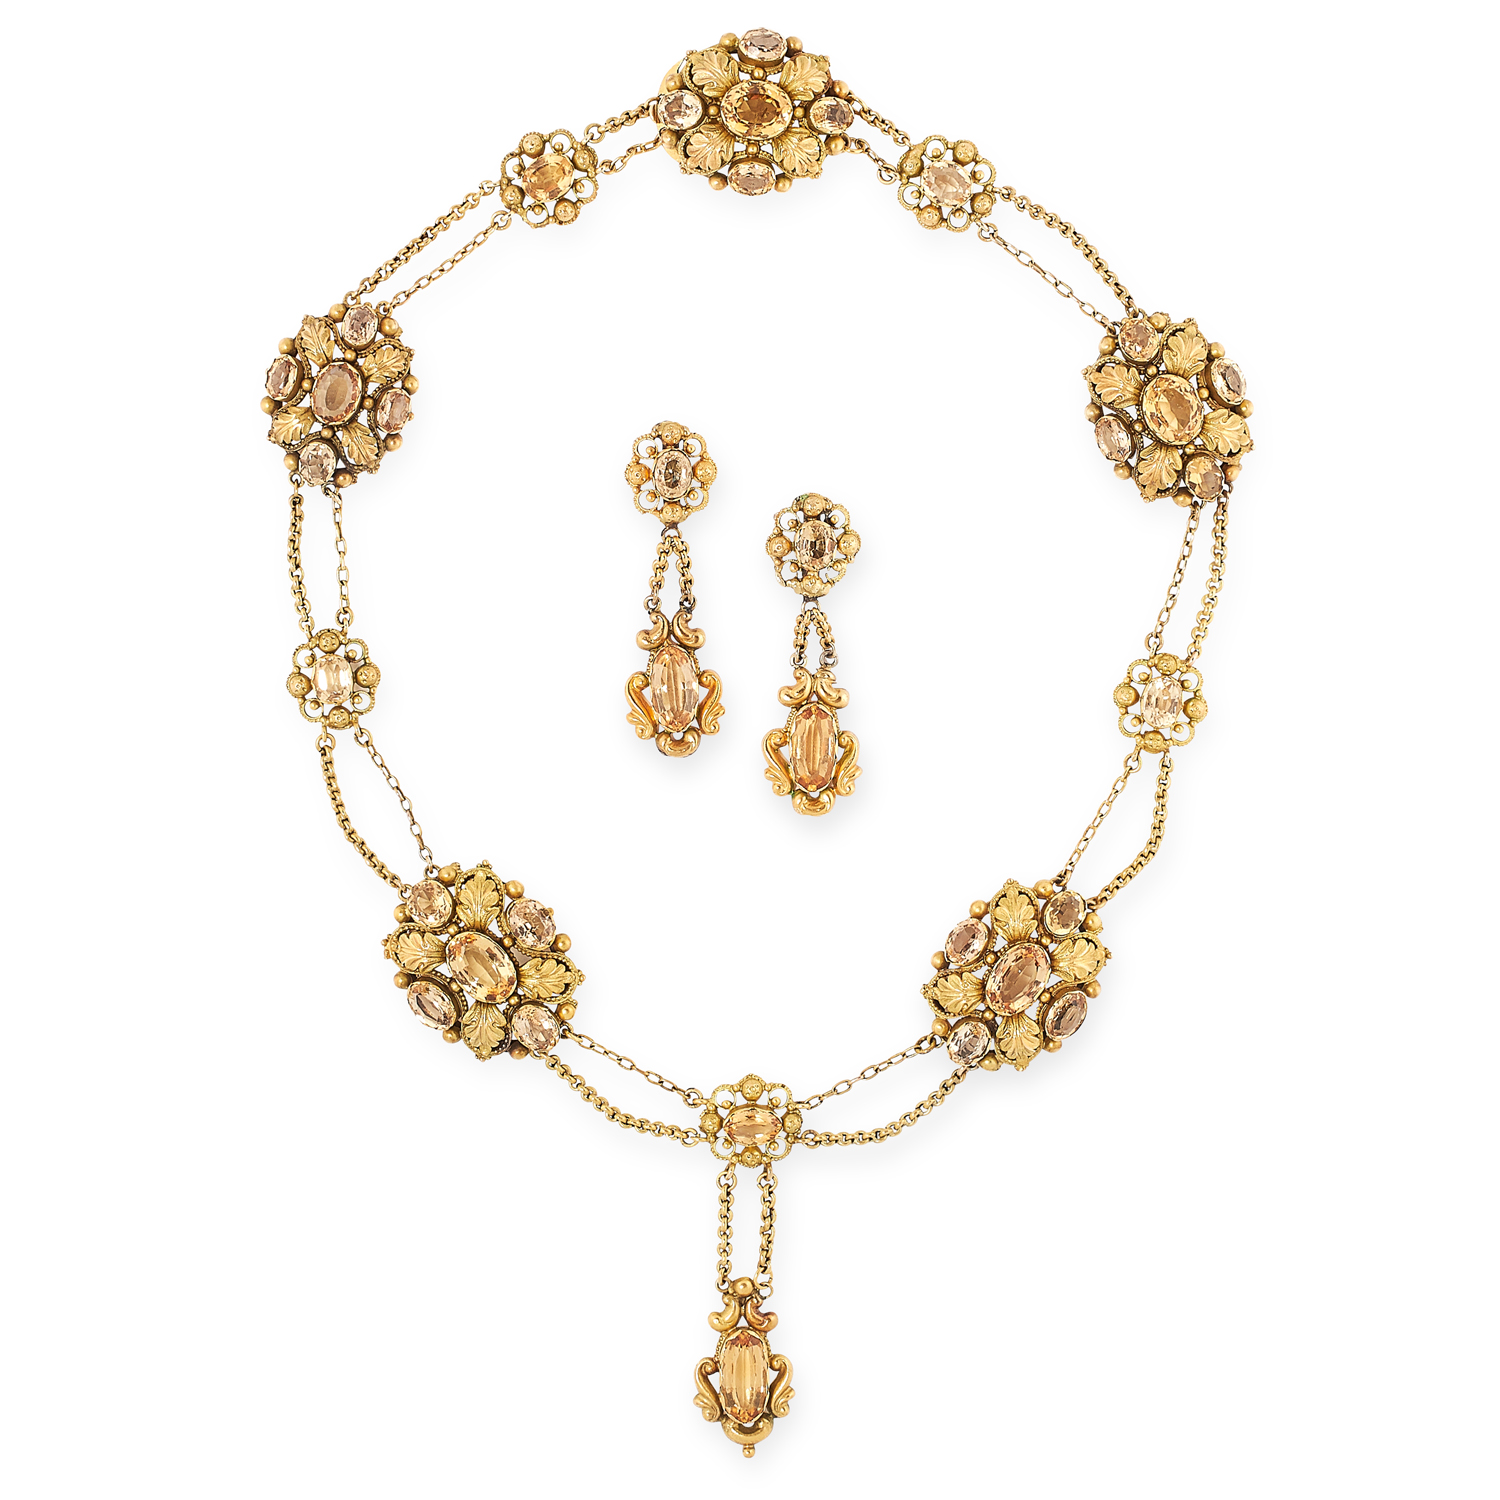 AN ANTIQUE IMPERIAL TOPAZ EARRING AND NECKLACE SUITE, 19TH CENTURY in yellow gold, each variously